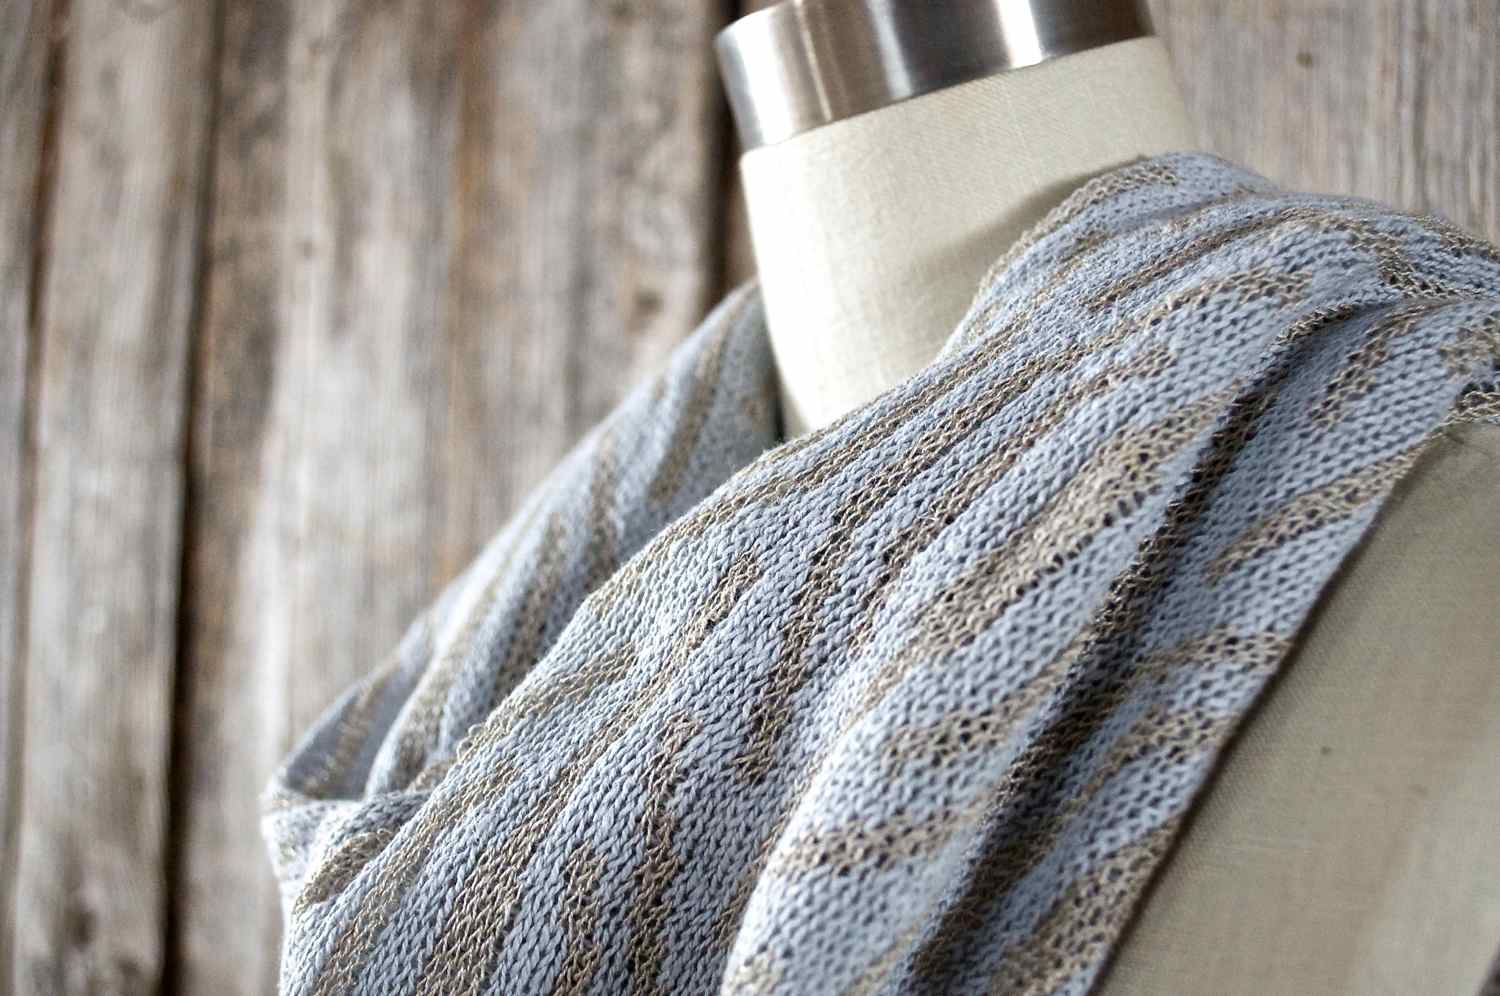 Summer infinity scarves and more colorways in the Lanza shawl coming soon!  Excited to have more options available for the upcoming season.